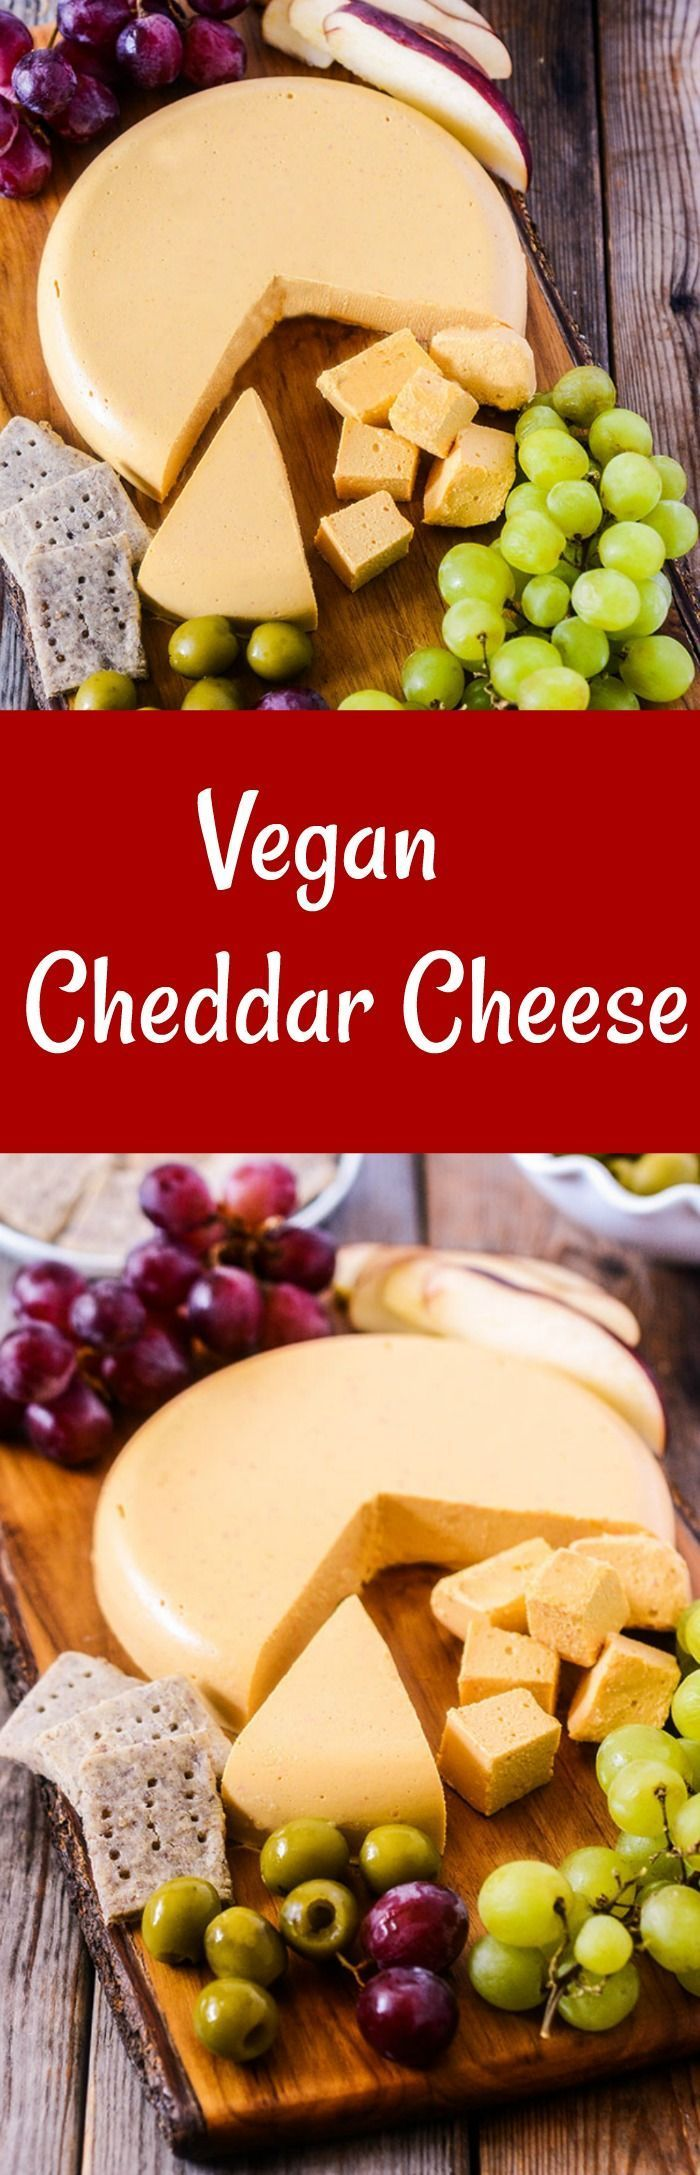 Vegan Cheddar Cheese Smooth, creamy and flavorful